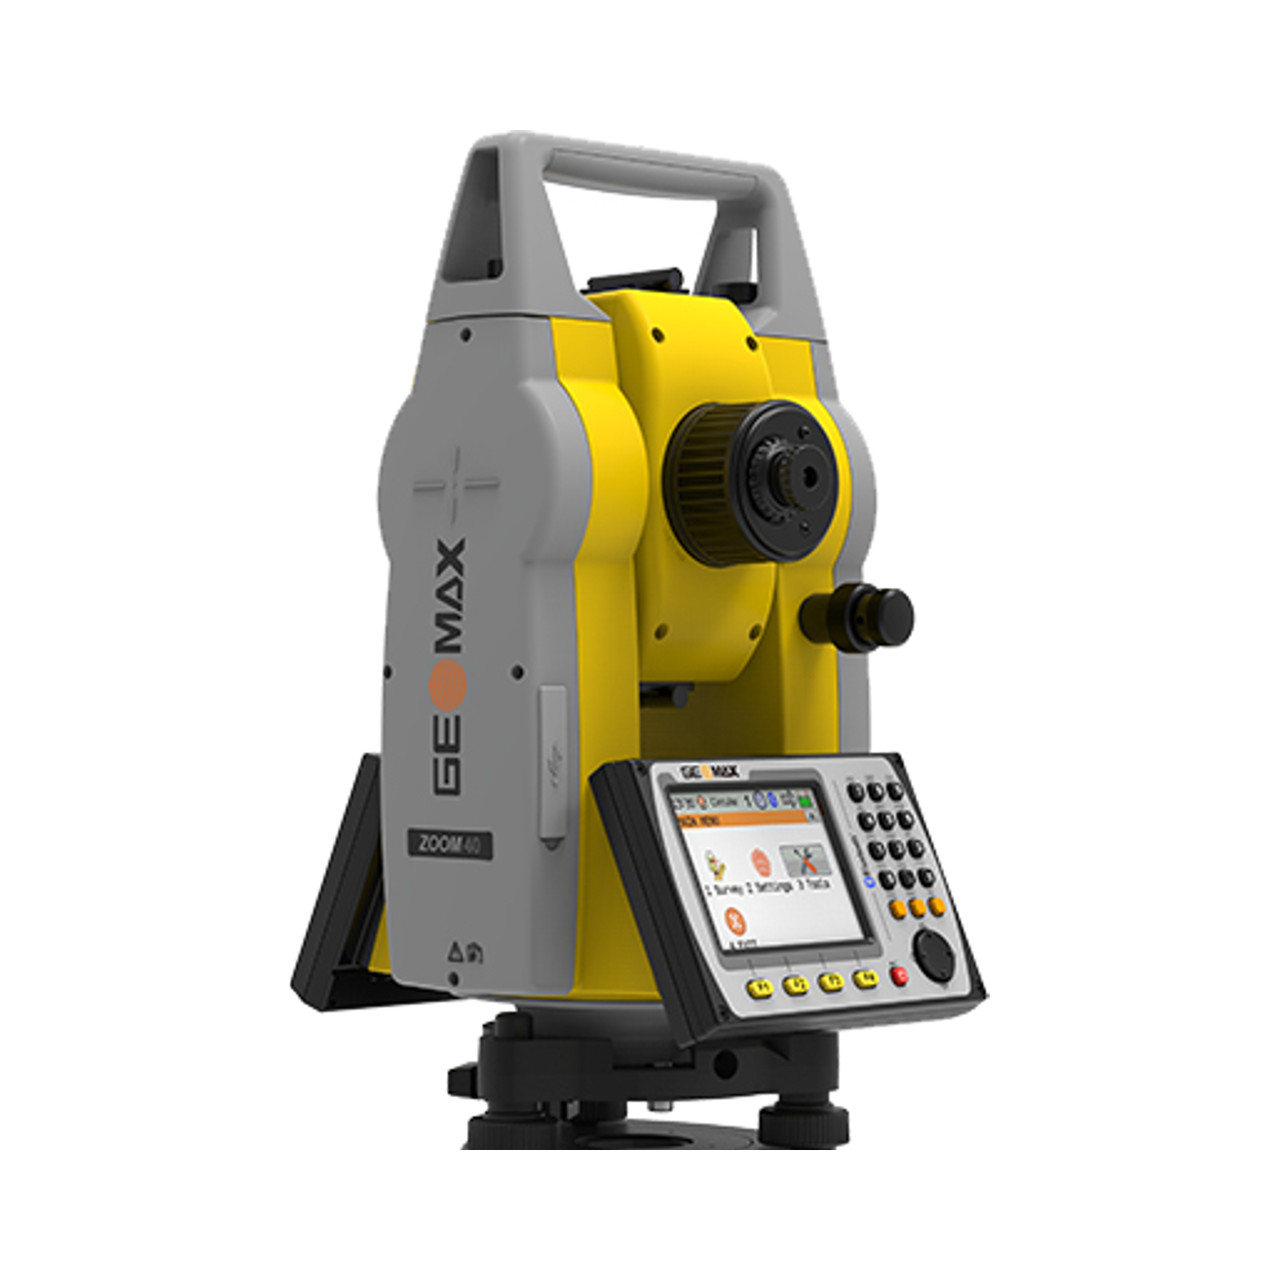 """GeoMax Zoom40, 5"""" WinCE, 500 m reflectorless Total Station Package (865959)"""